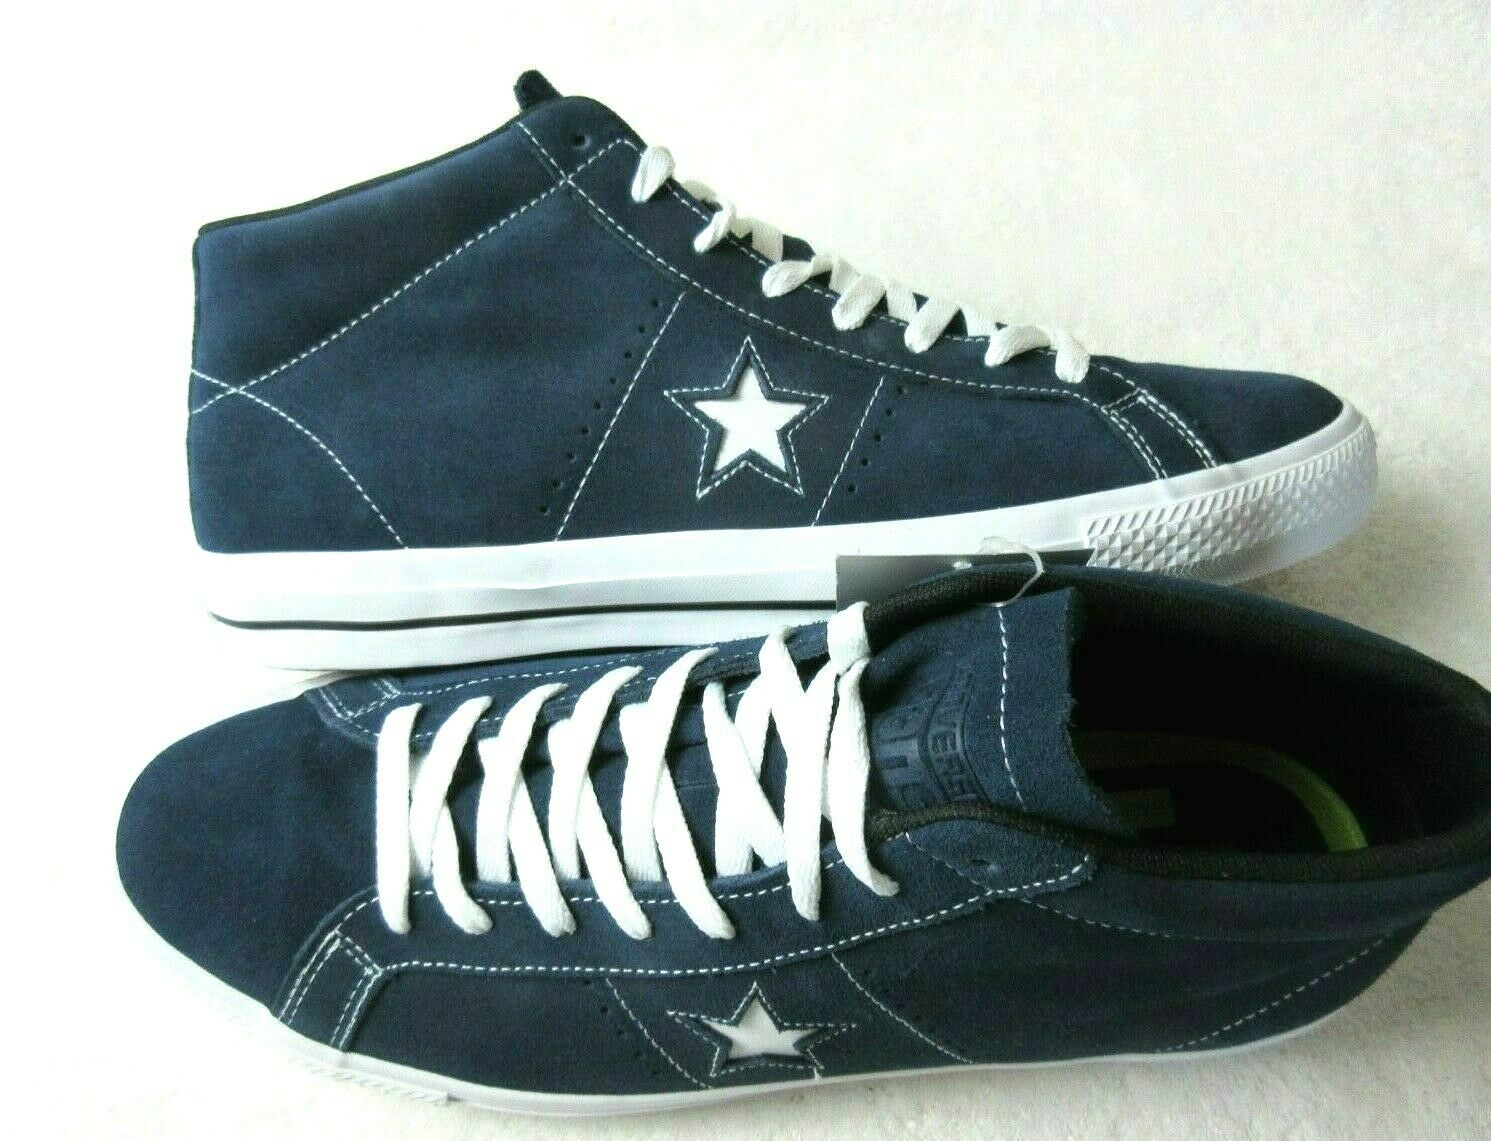 Converse Cons One Star Pro Suede Mid